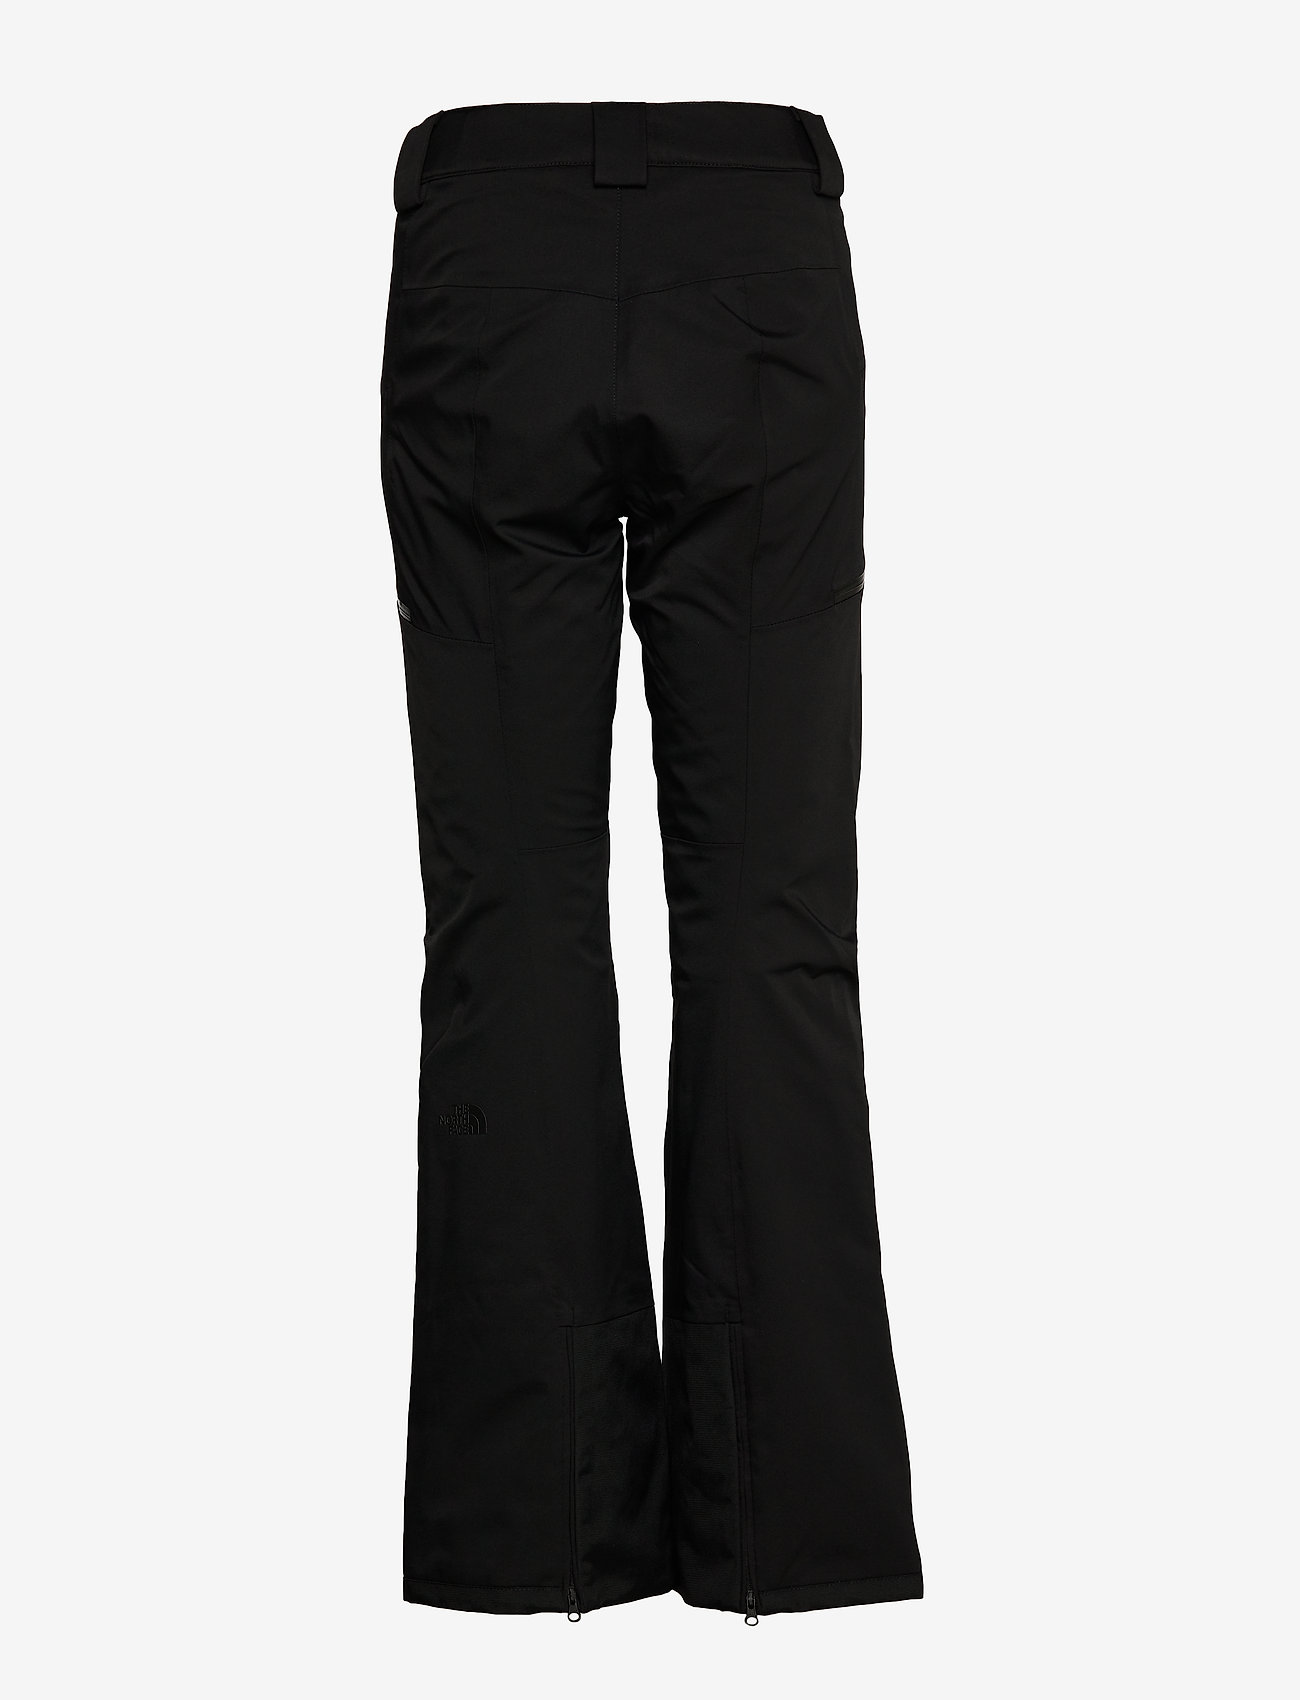 The North Face - W LENADO PANT FIERY RED - insulated pants - tnf black - 1